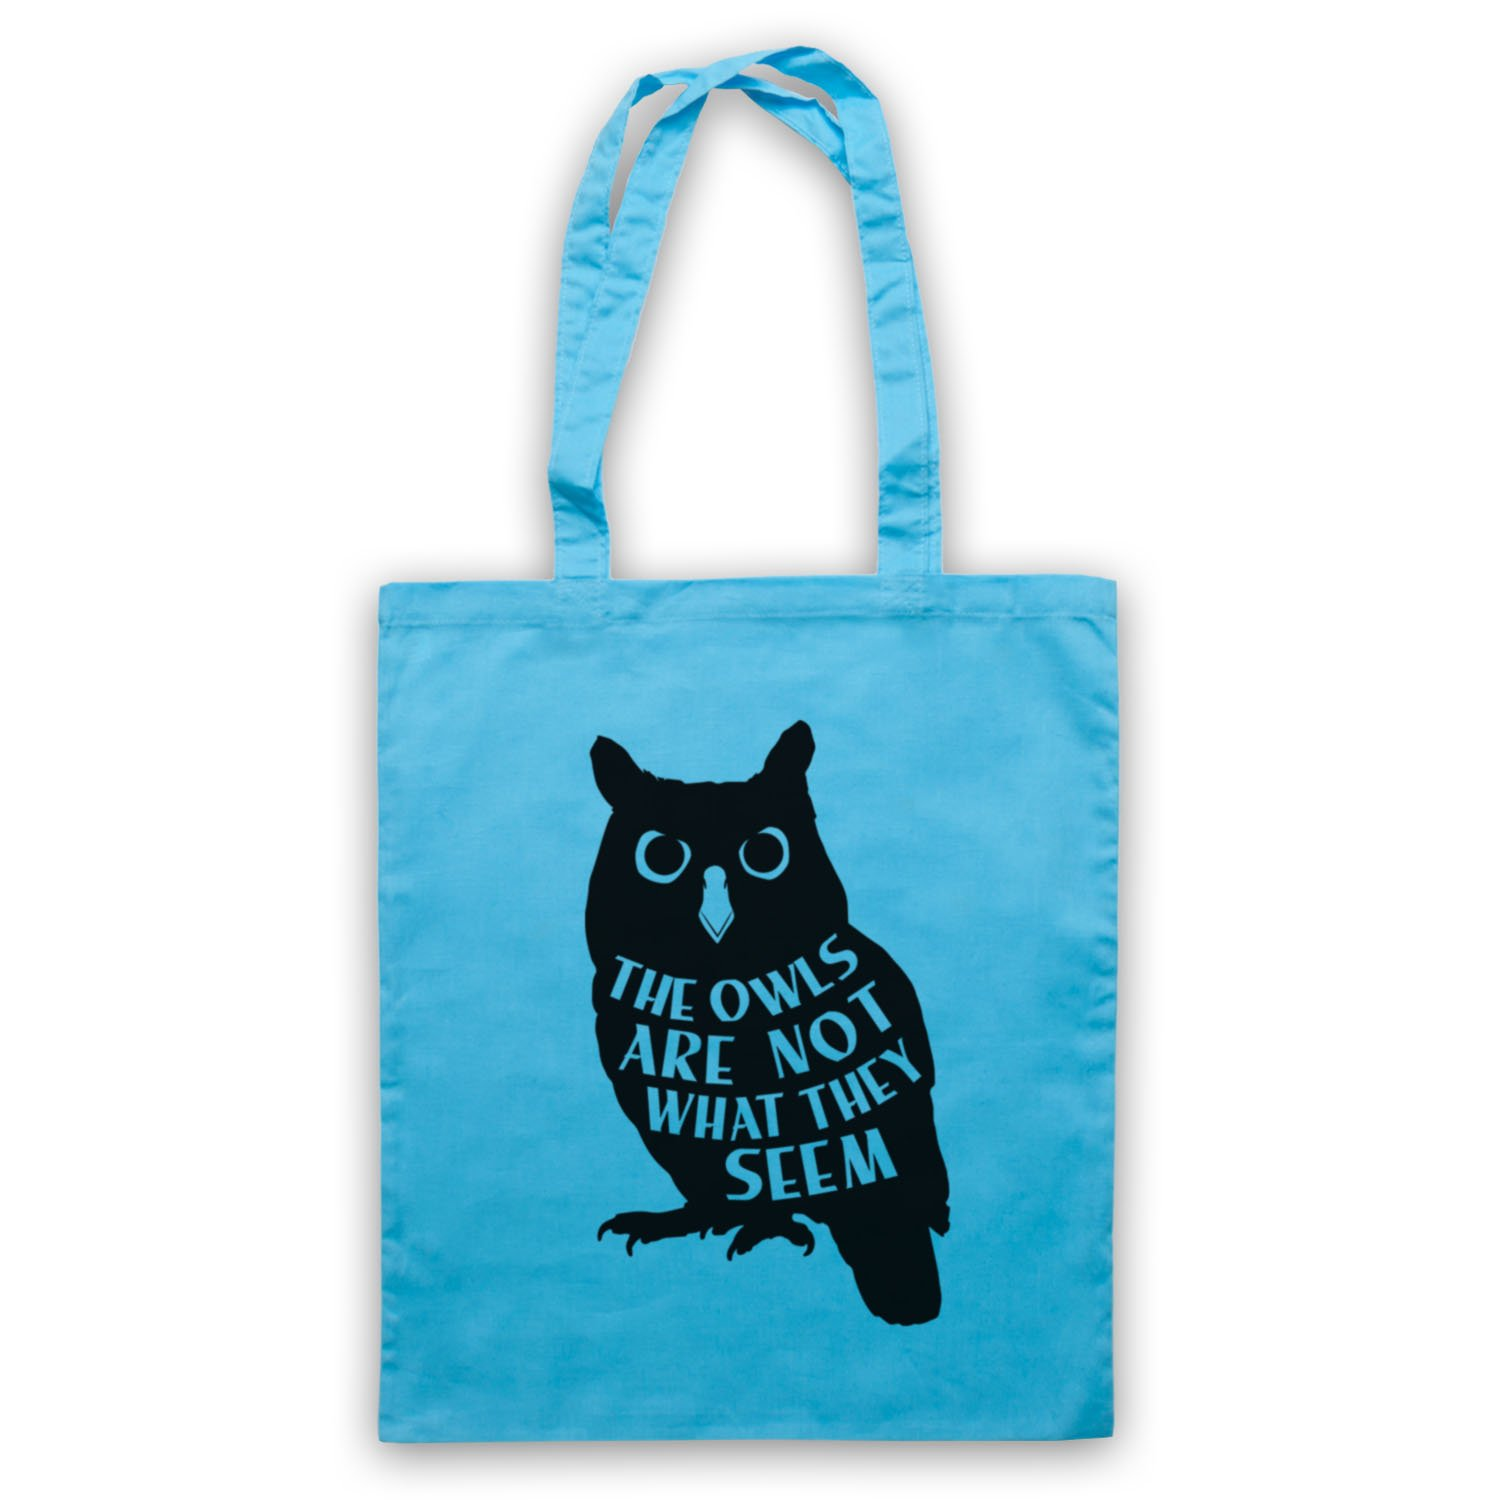 Inspired by Twin Peaks The Owls Are Not What They Seem Unofficial Tote Bag,  Black: Amazon.co.uk: Shoes & Bags